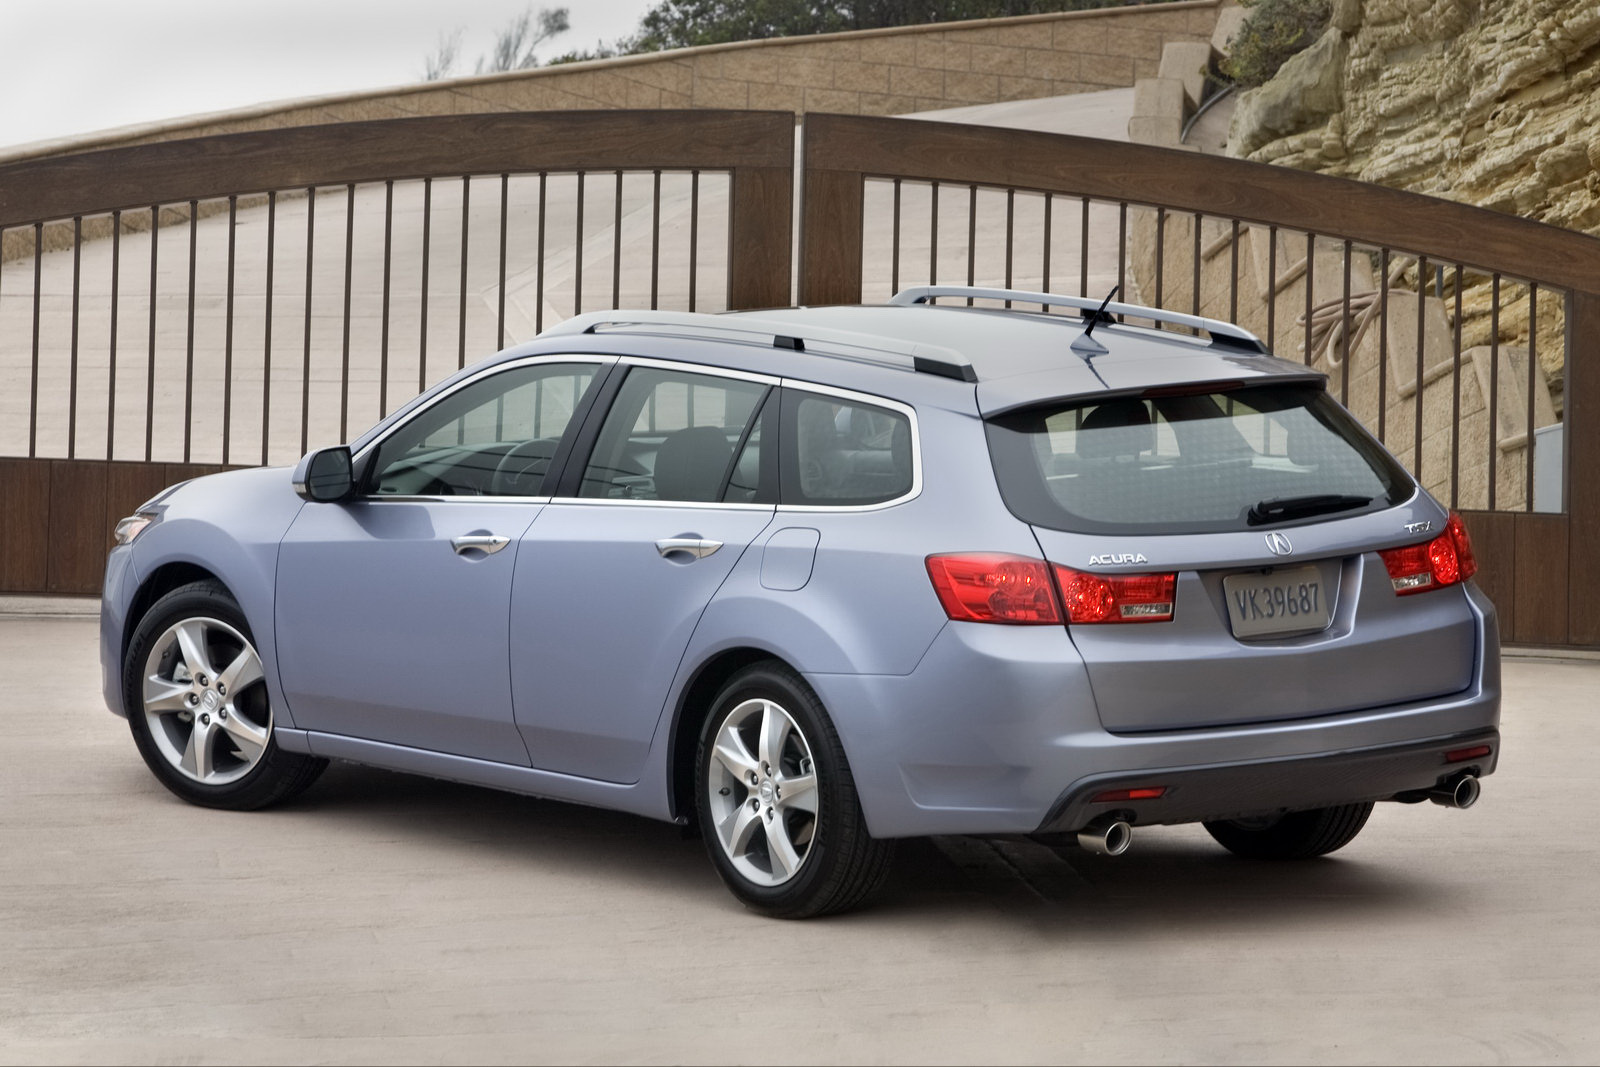 2011 acura tsx sport wagon pricepicture of auto design. Black Bedroom Furniture Sets. Home Design Ideas